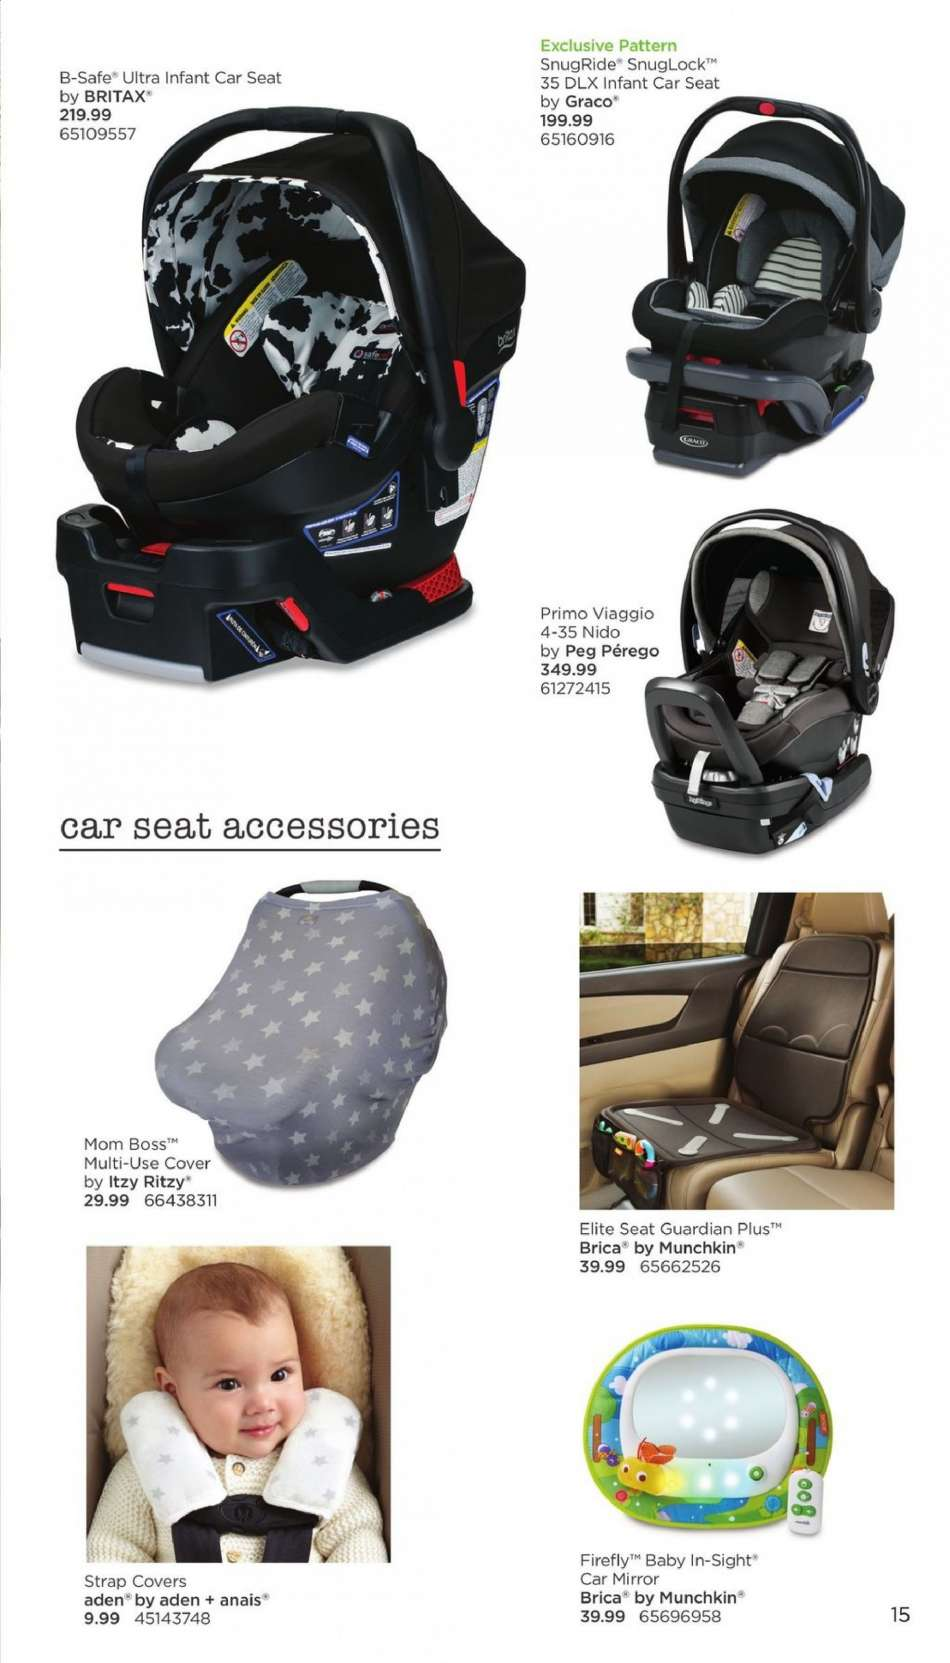 Surprising Buybuy Baby Flyer 03 08 2019 07 30 2019 Weekly Ads Us Pdpeps Interior Chair Design Pdpepsorg